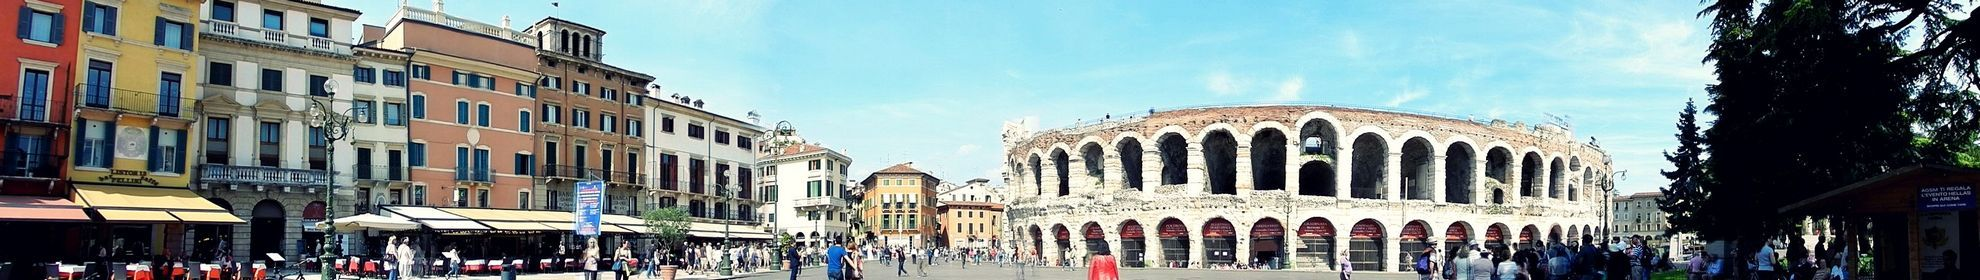 B&B Casanova Verona - Porta Nuova - Rates from €104